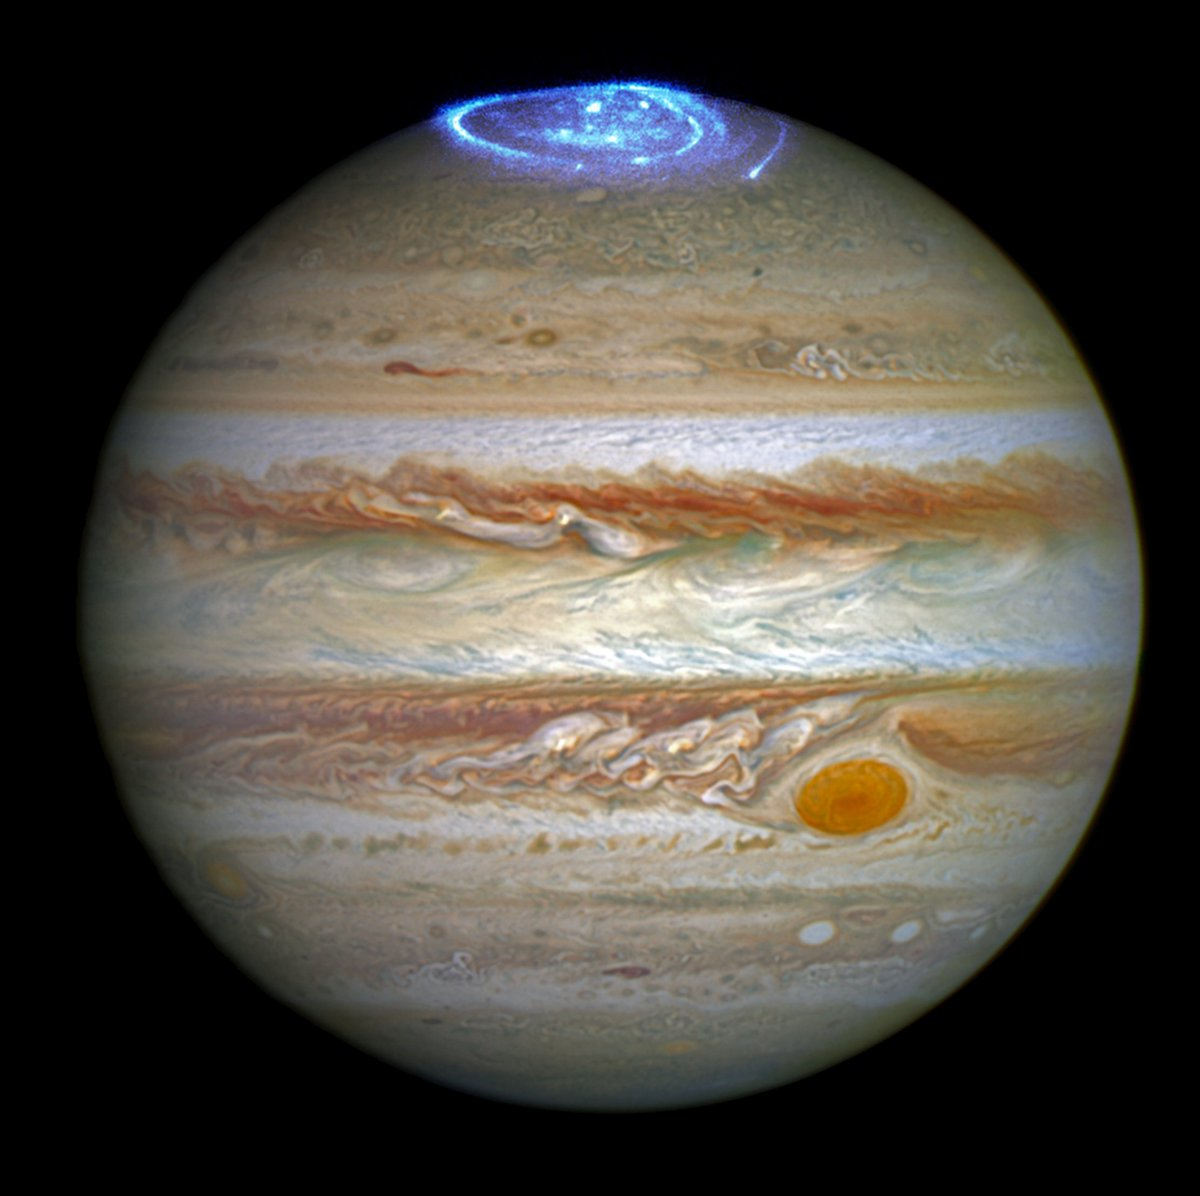 We can all agree auroras on Earth are breathtaking...but how about this NEW view of auroras at Jupiter!? Wow! https://t.co/GZPpc1LP54